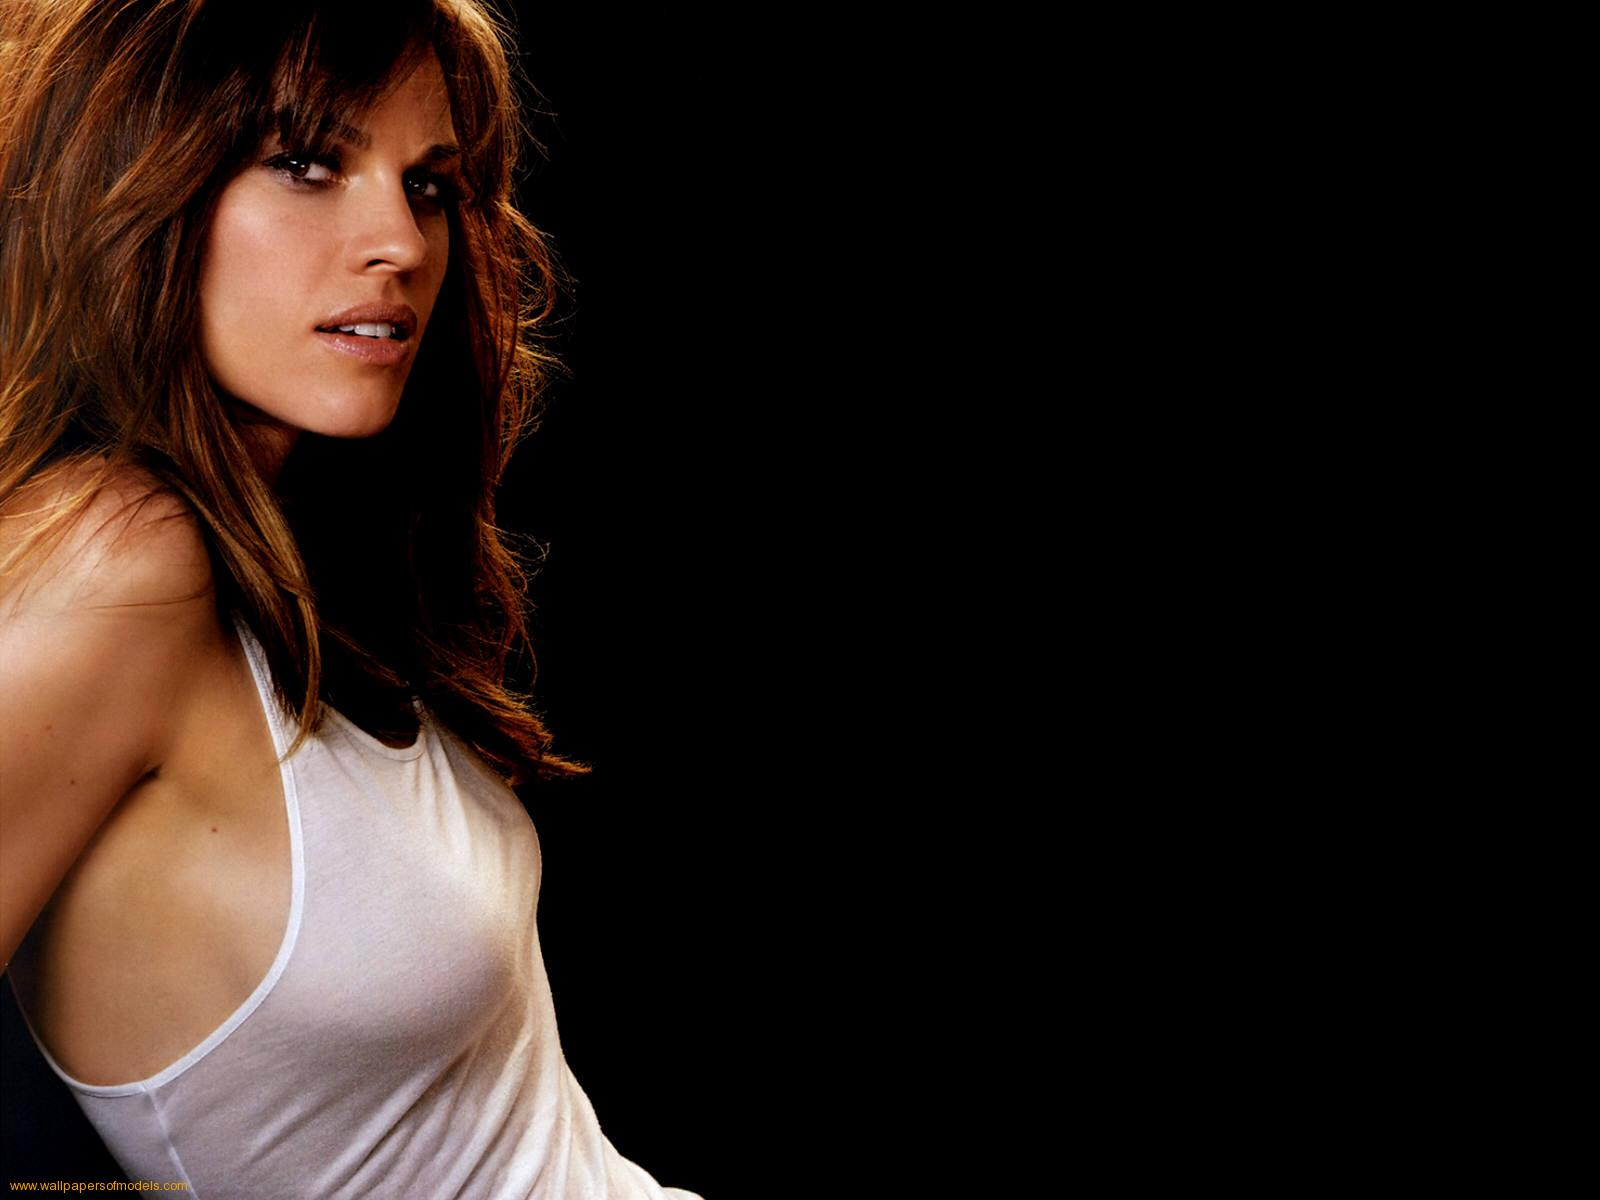 hilary_swank_wallpaper_